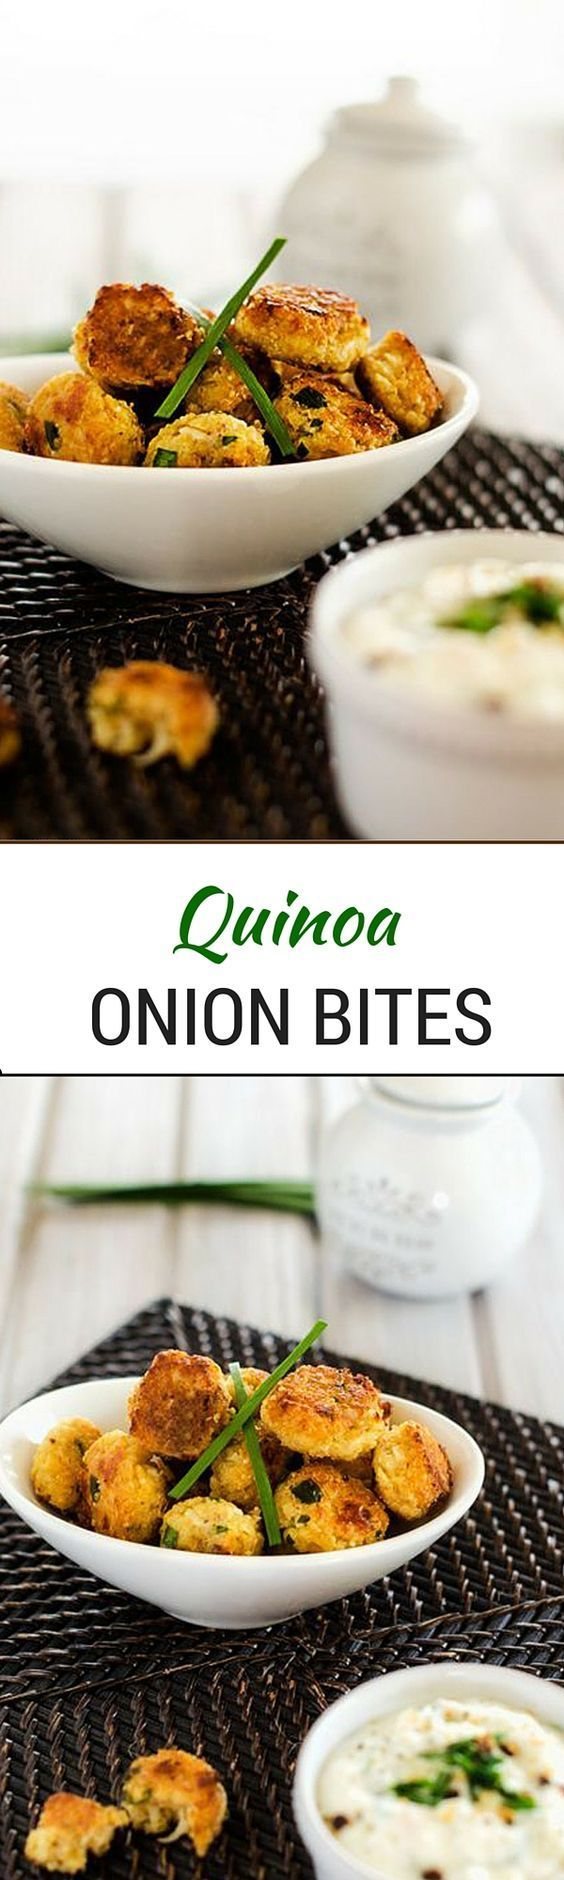 Onion Quinoa Bites - These Quinoa Onion Bites are the perfect healthy finger food!  Gluten Free with a Vegan Option! - WendyPolisi.com